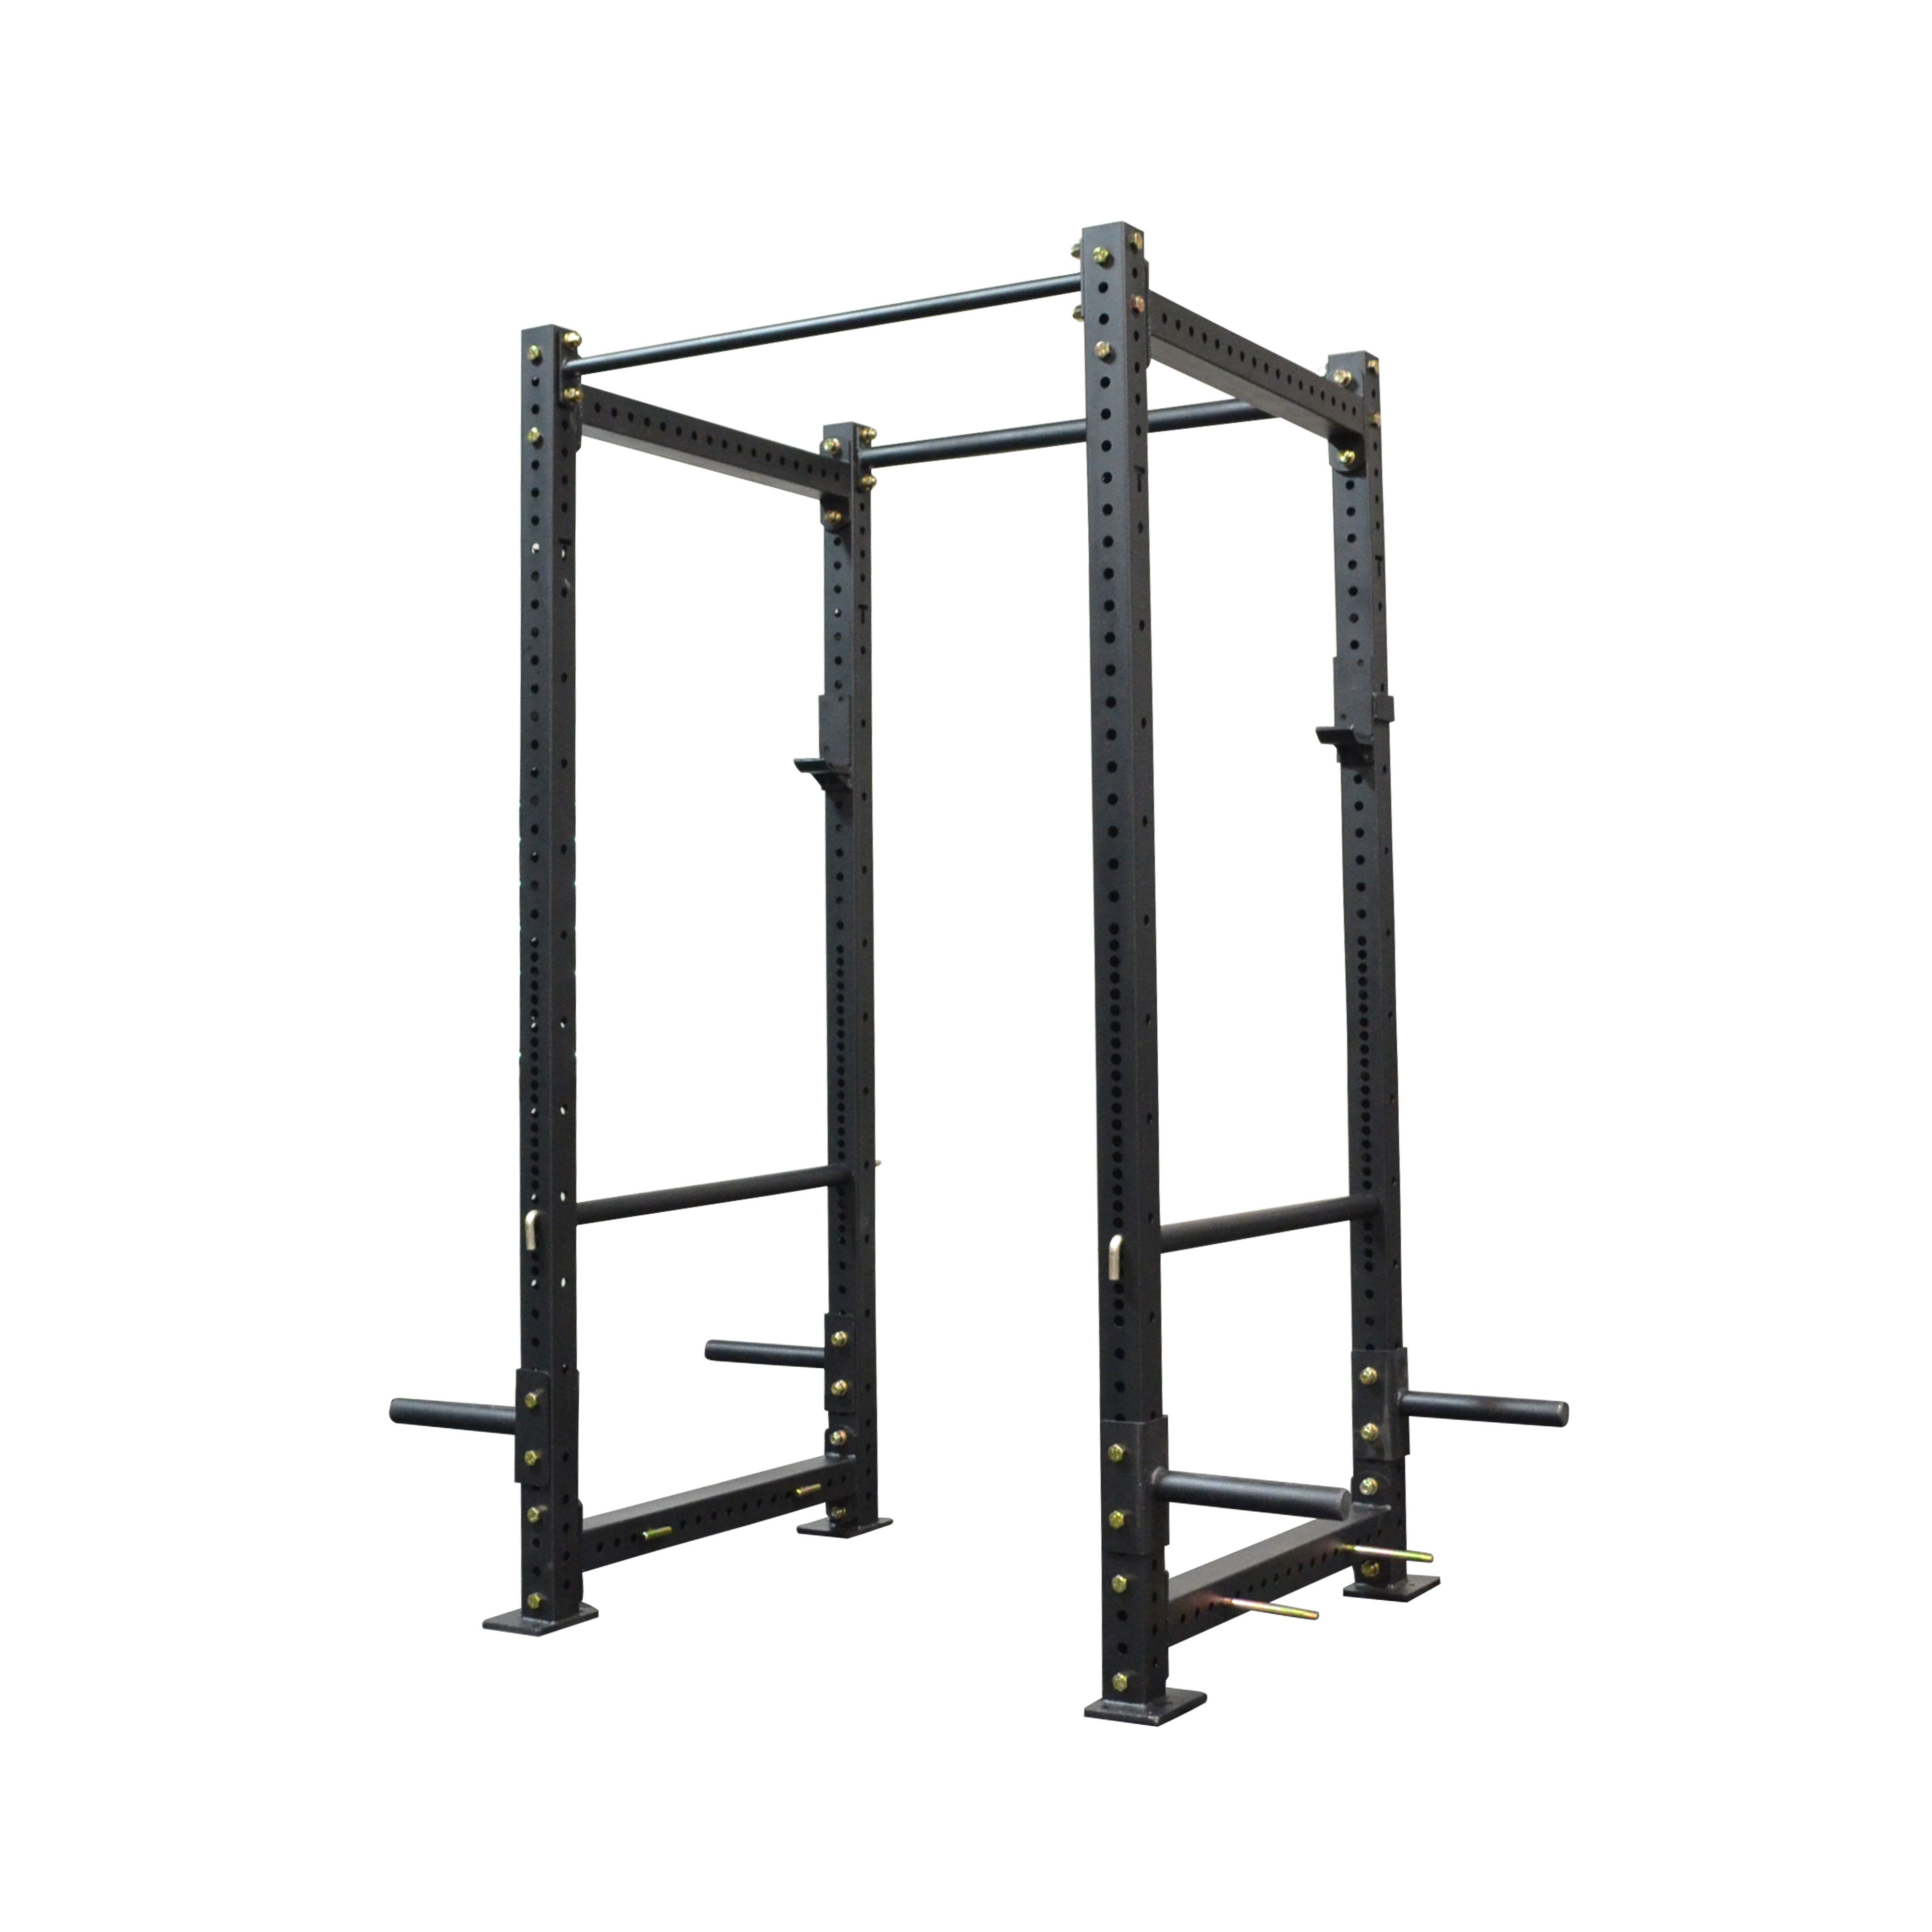 titan x 2 series power rack tall bolt down accessories available power cages studiodarpan sports fitness